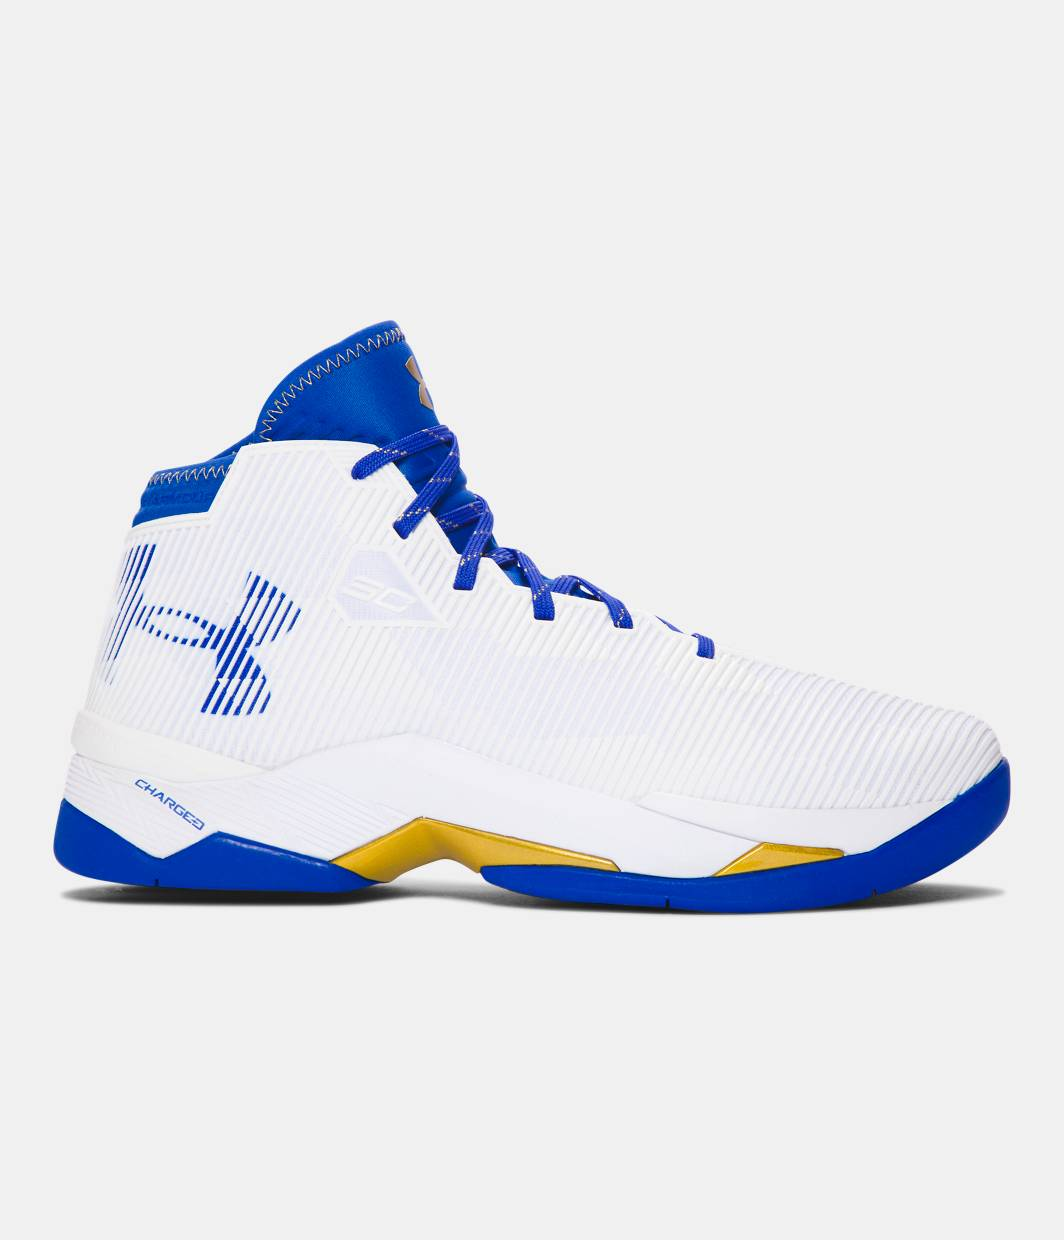 Curry S Basketball Shoes Blue Red And White